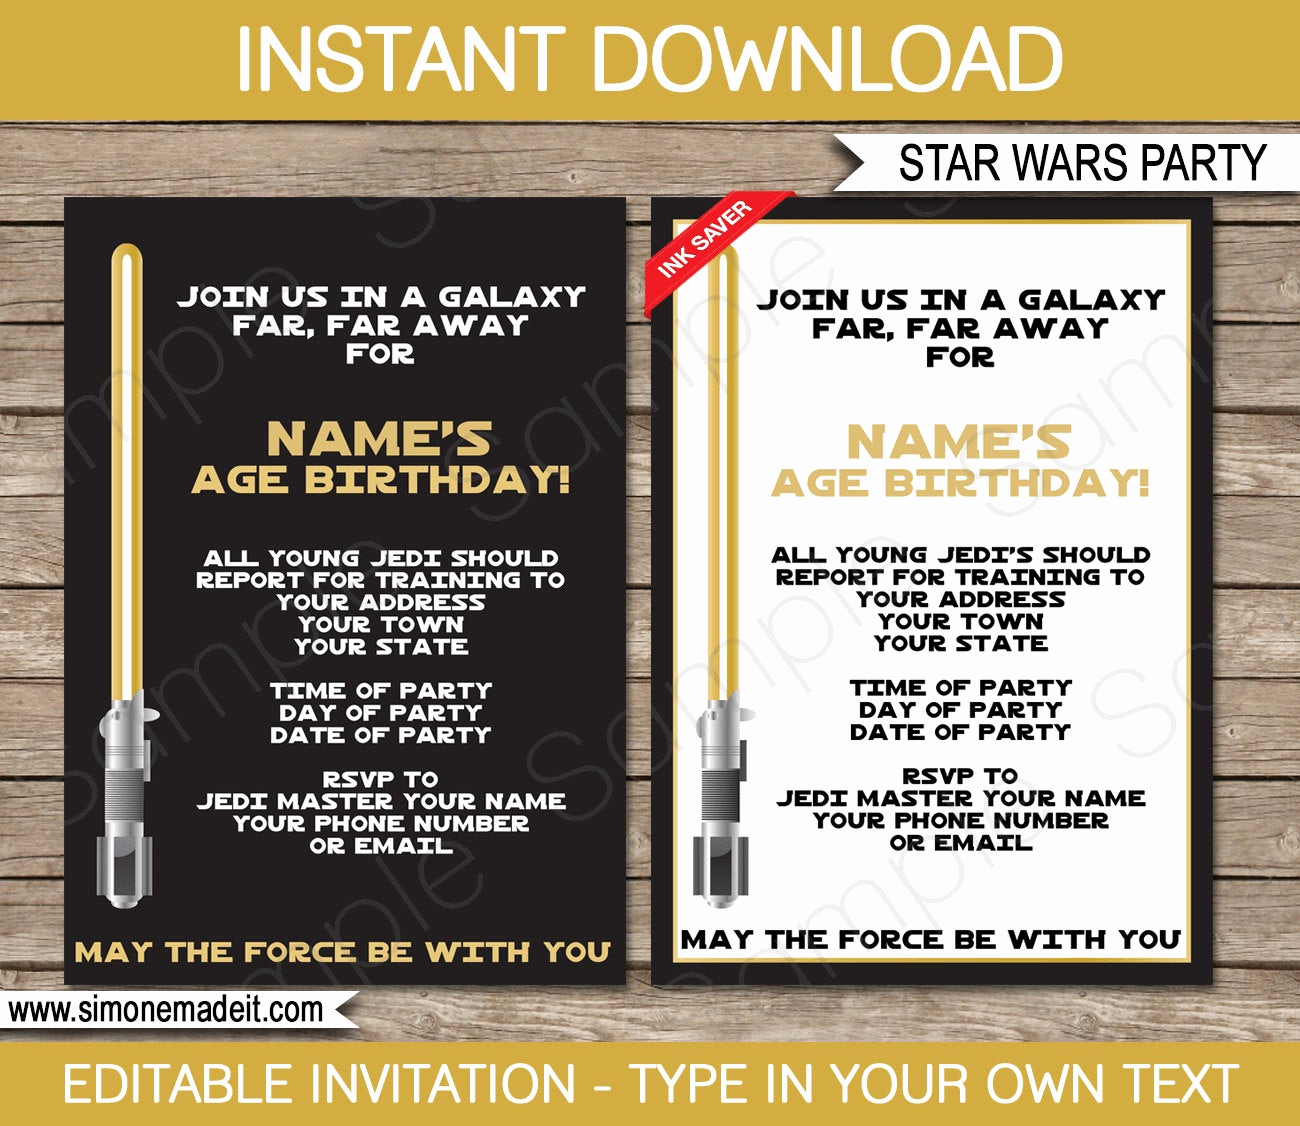 Star Wars Invitation Printable Free Beautiful Star Wars Invitation Template Gold Birthday Party